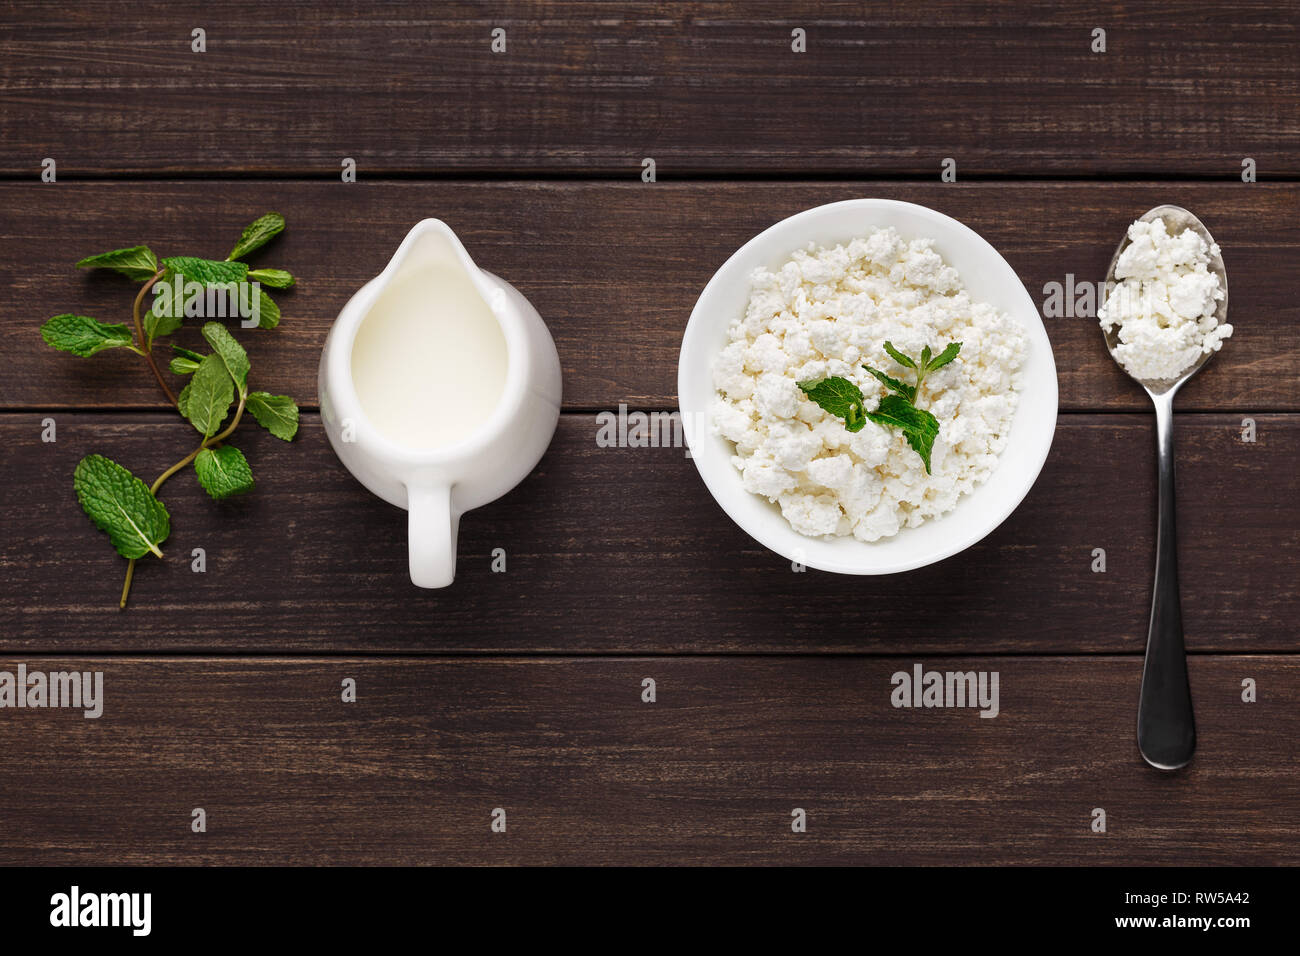 Lacto vegetarian eating concept - Stock Image